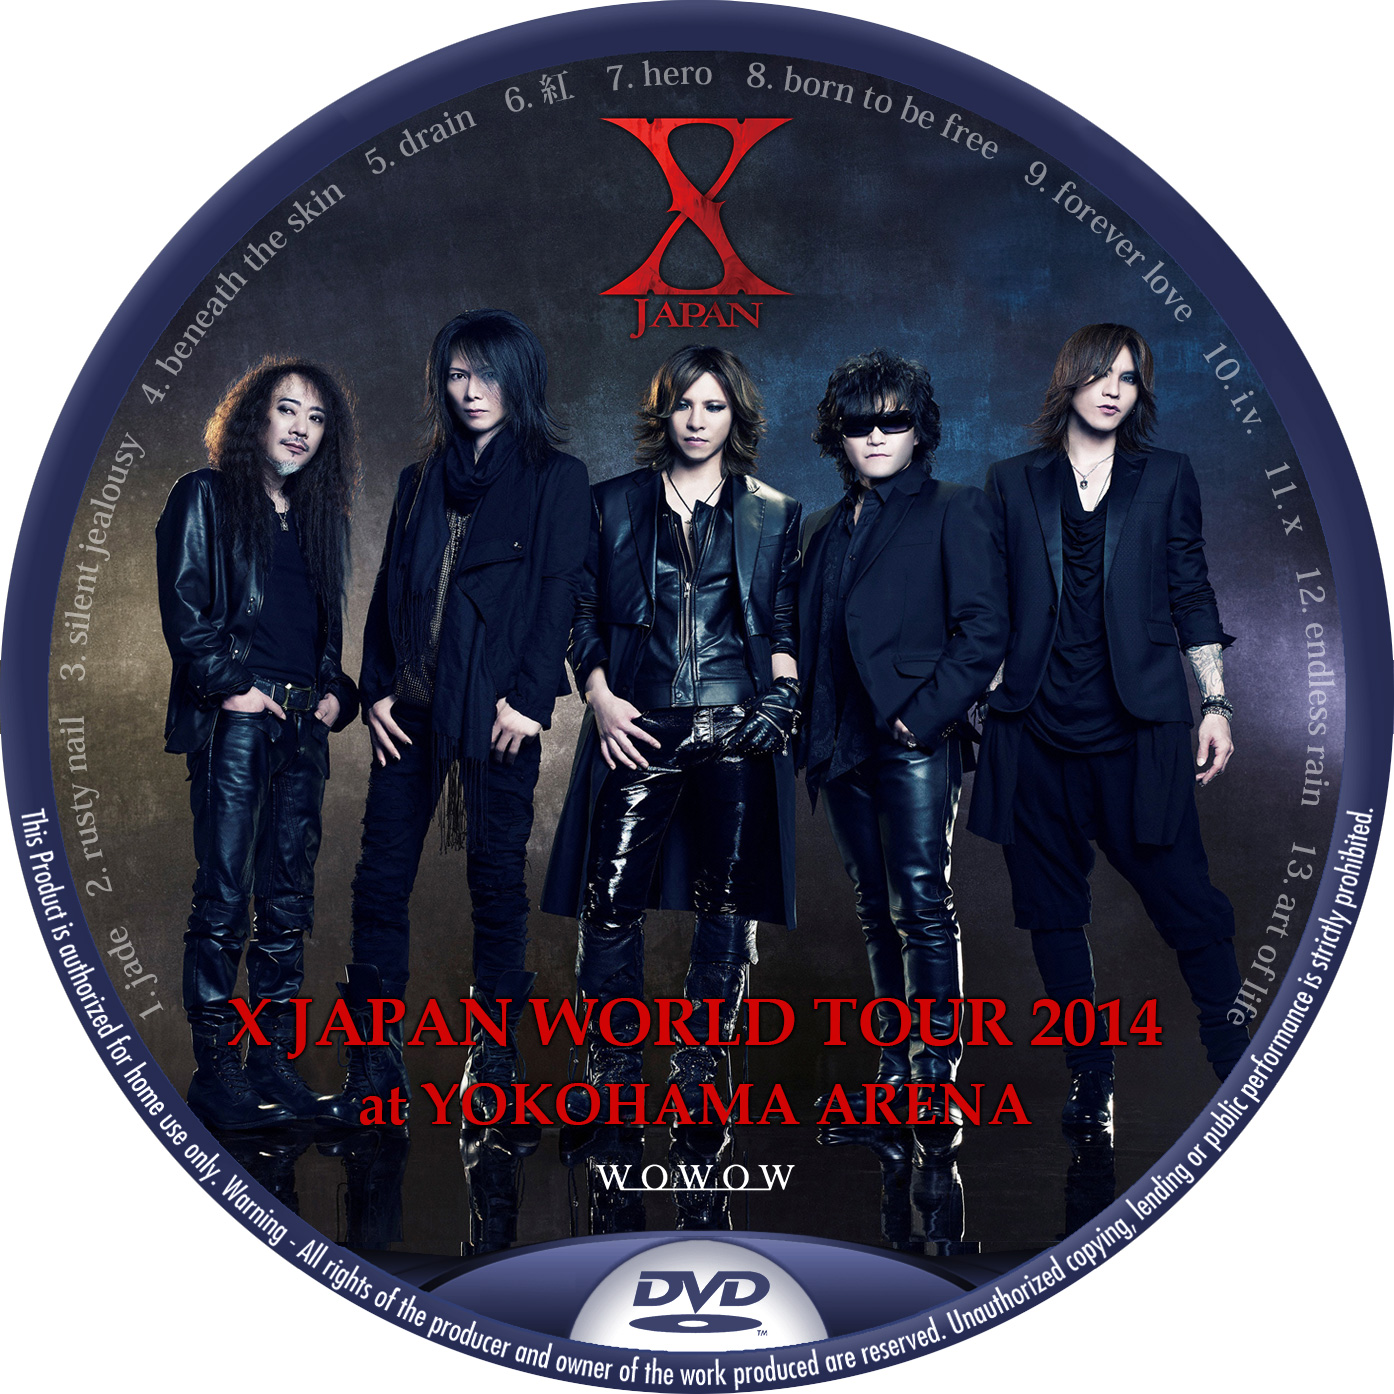 X JAPAN WORLD TOUR 2014 DVDラベル WOWOW